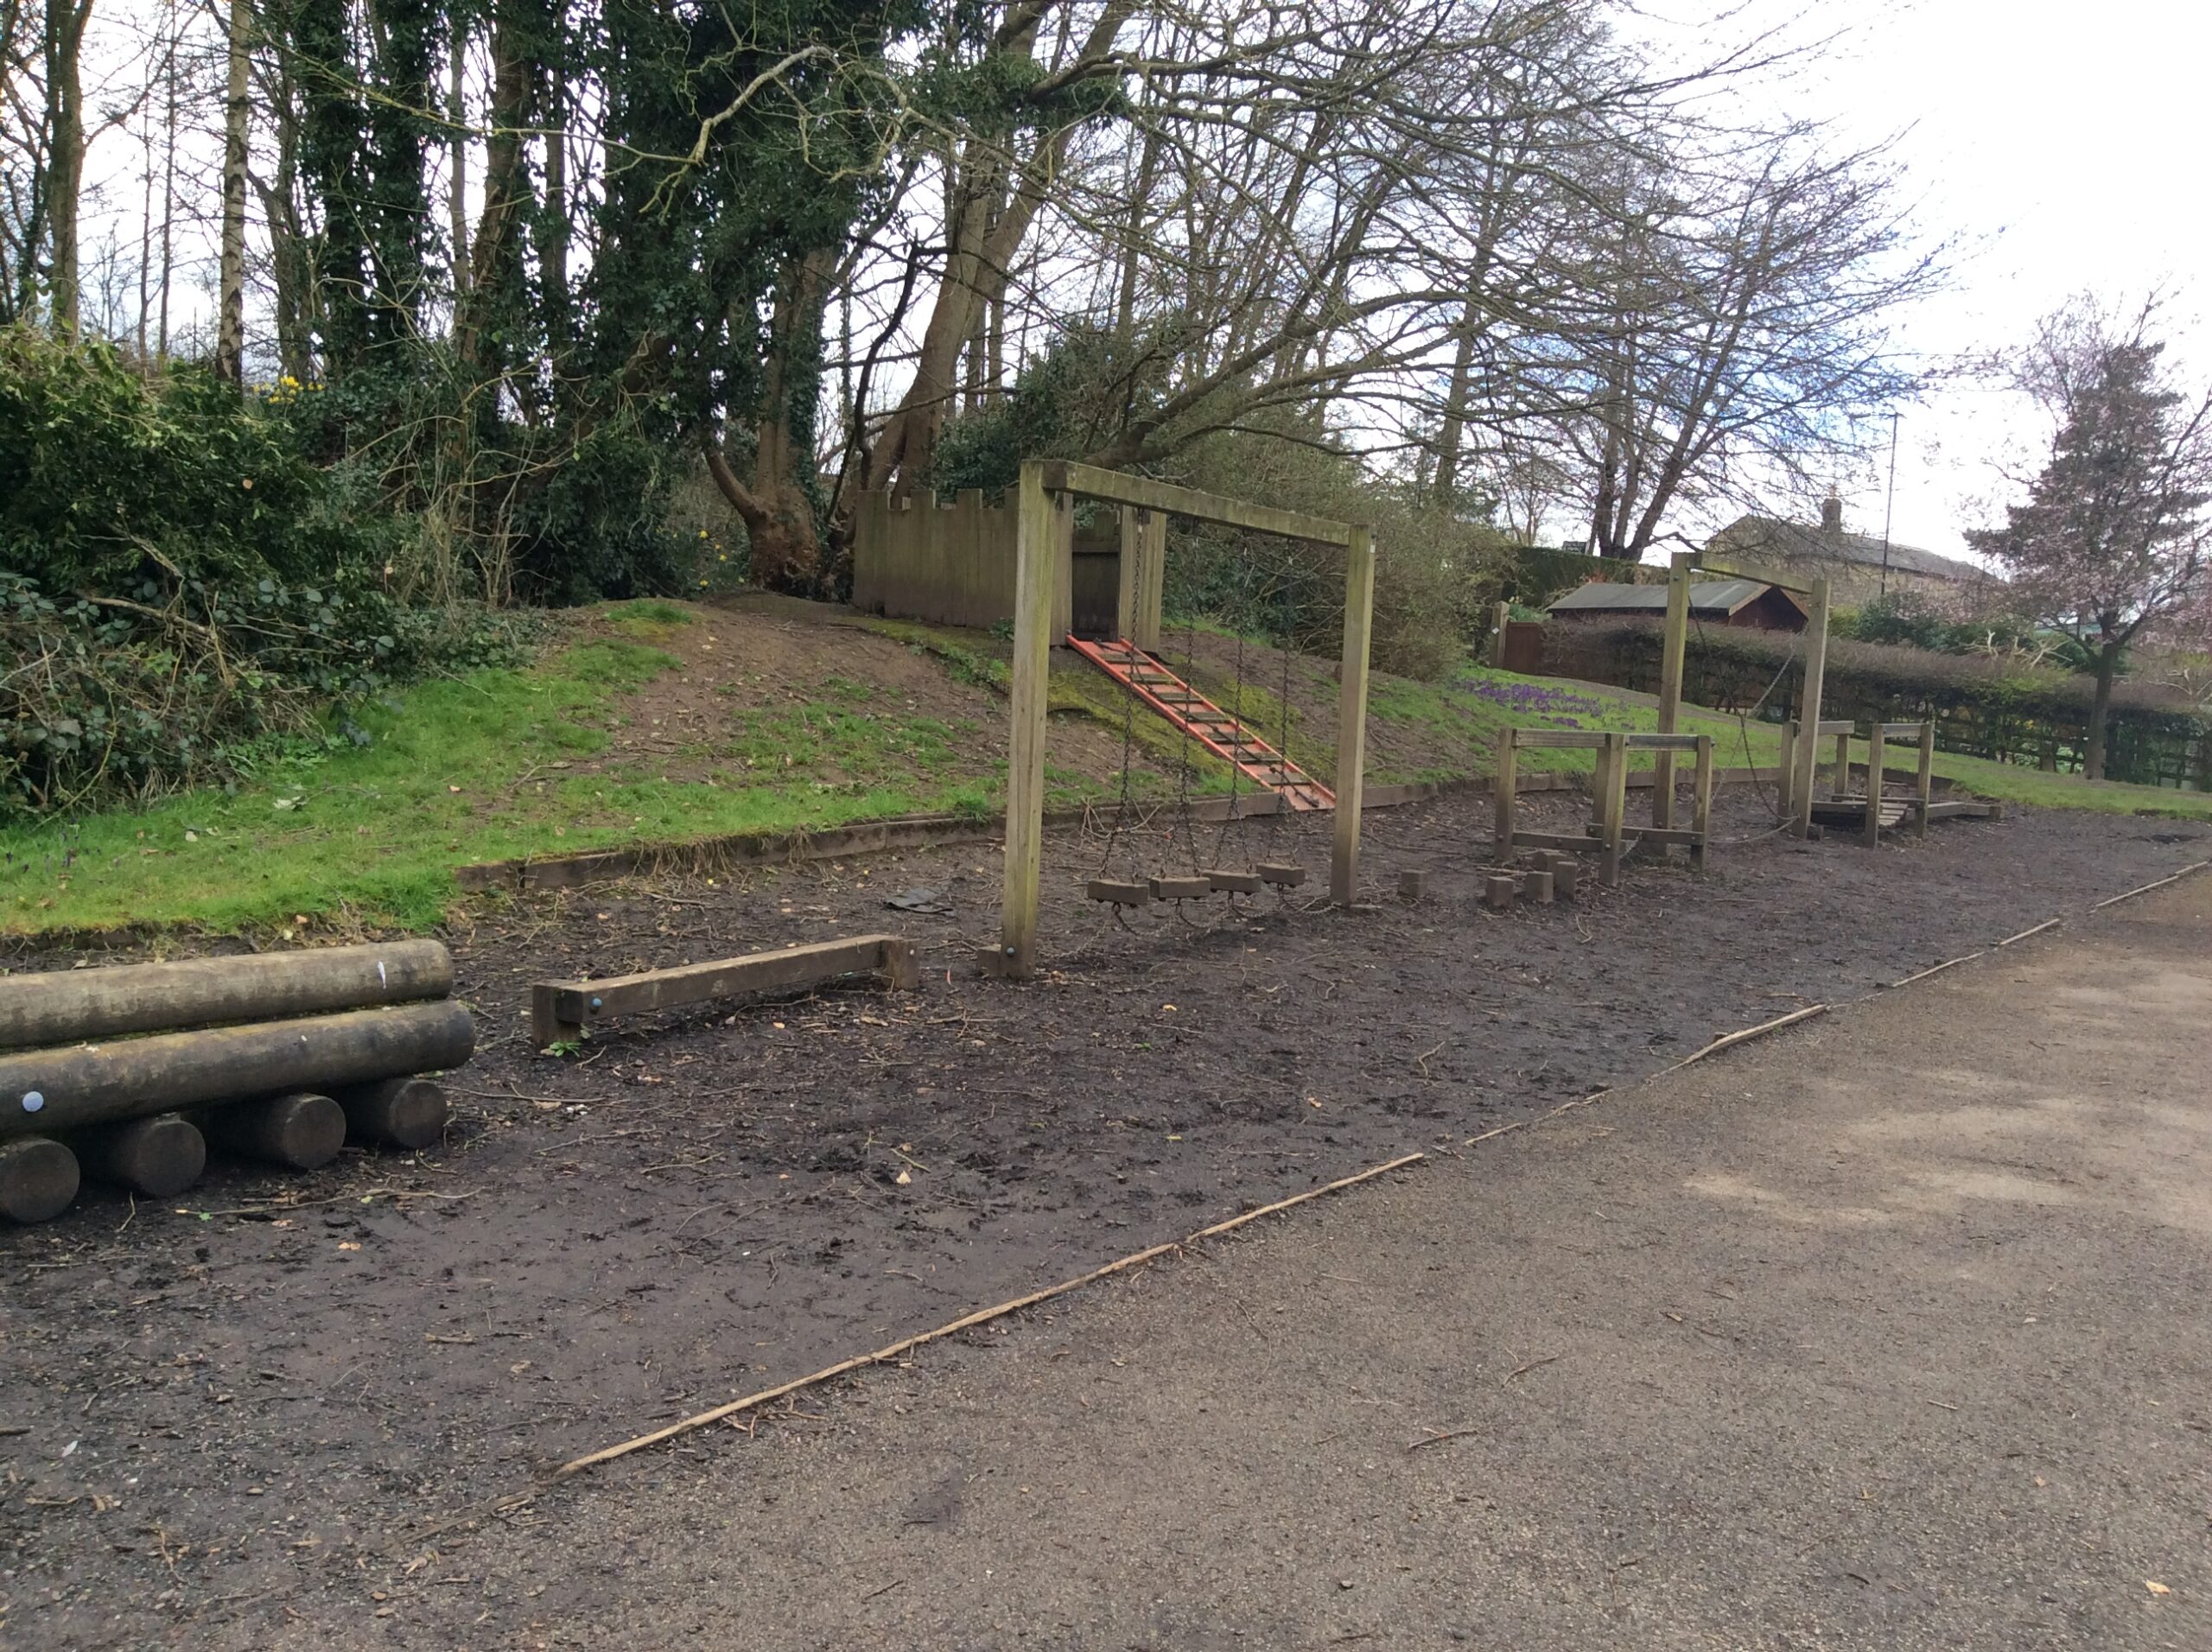 St Mary's existing adventure playground